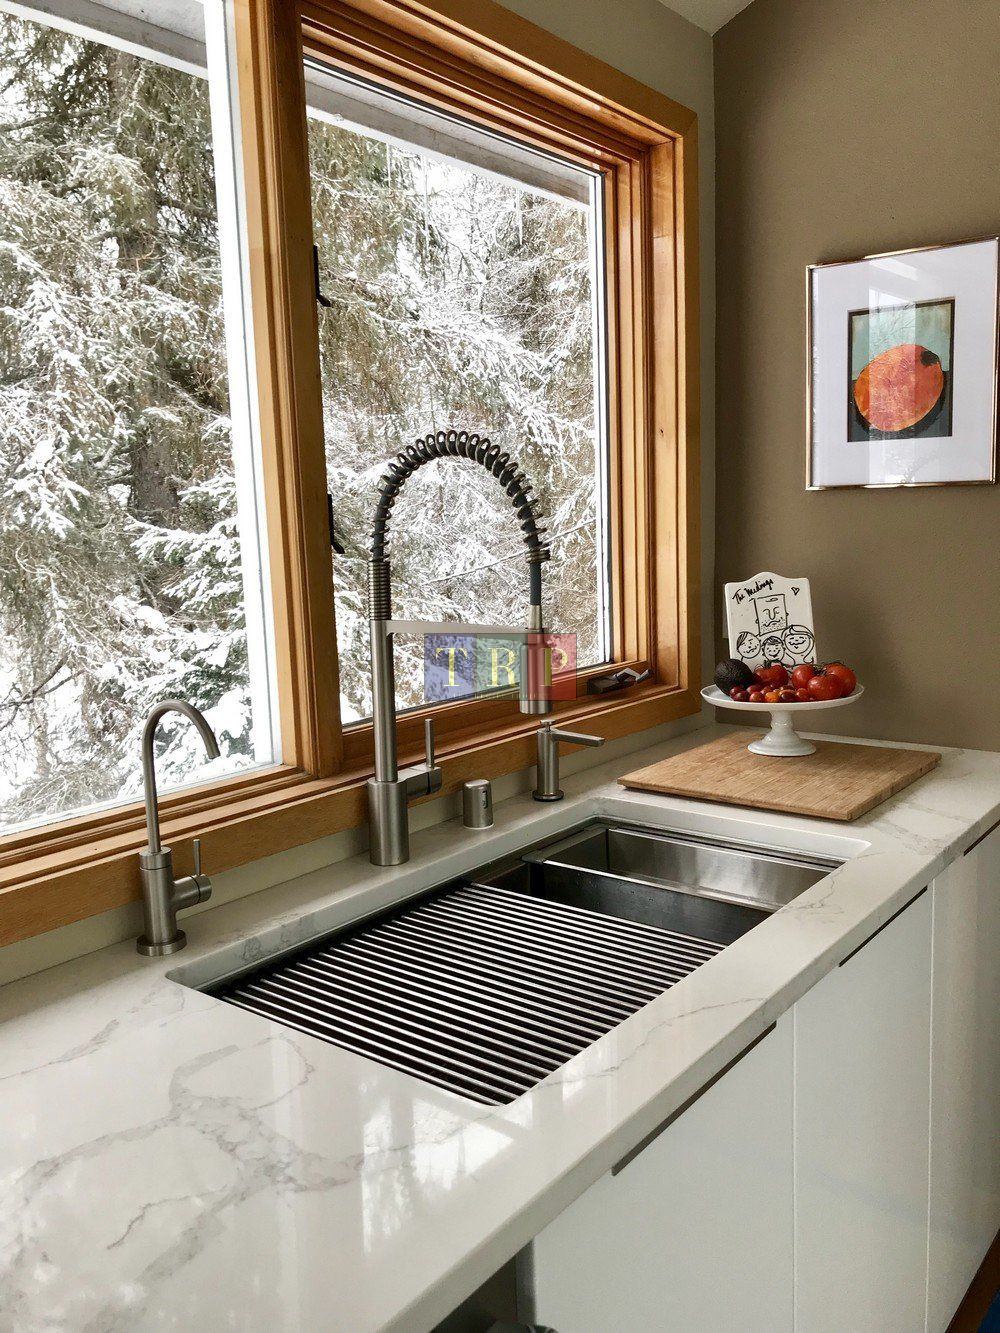 Awesome Kitchen Sink Ideas Modern Cool And Corner Kitchen Sink Design Kitchen Sink Remodel Kitchen Sink Design Kitchen Remodel